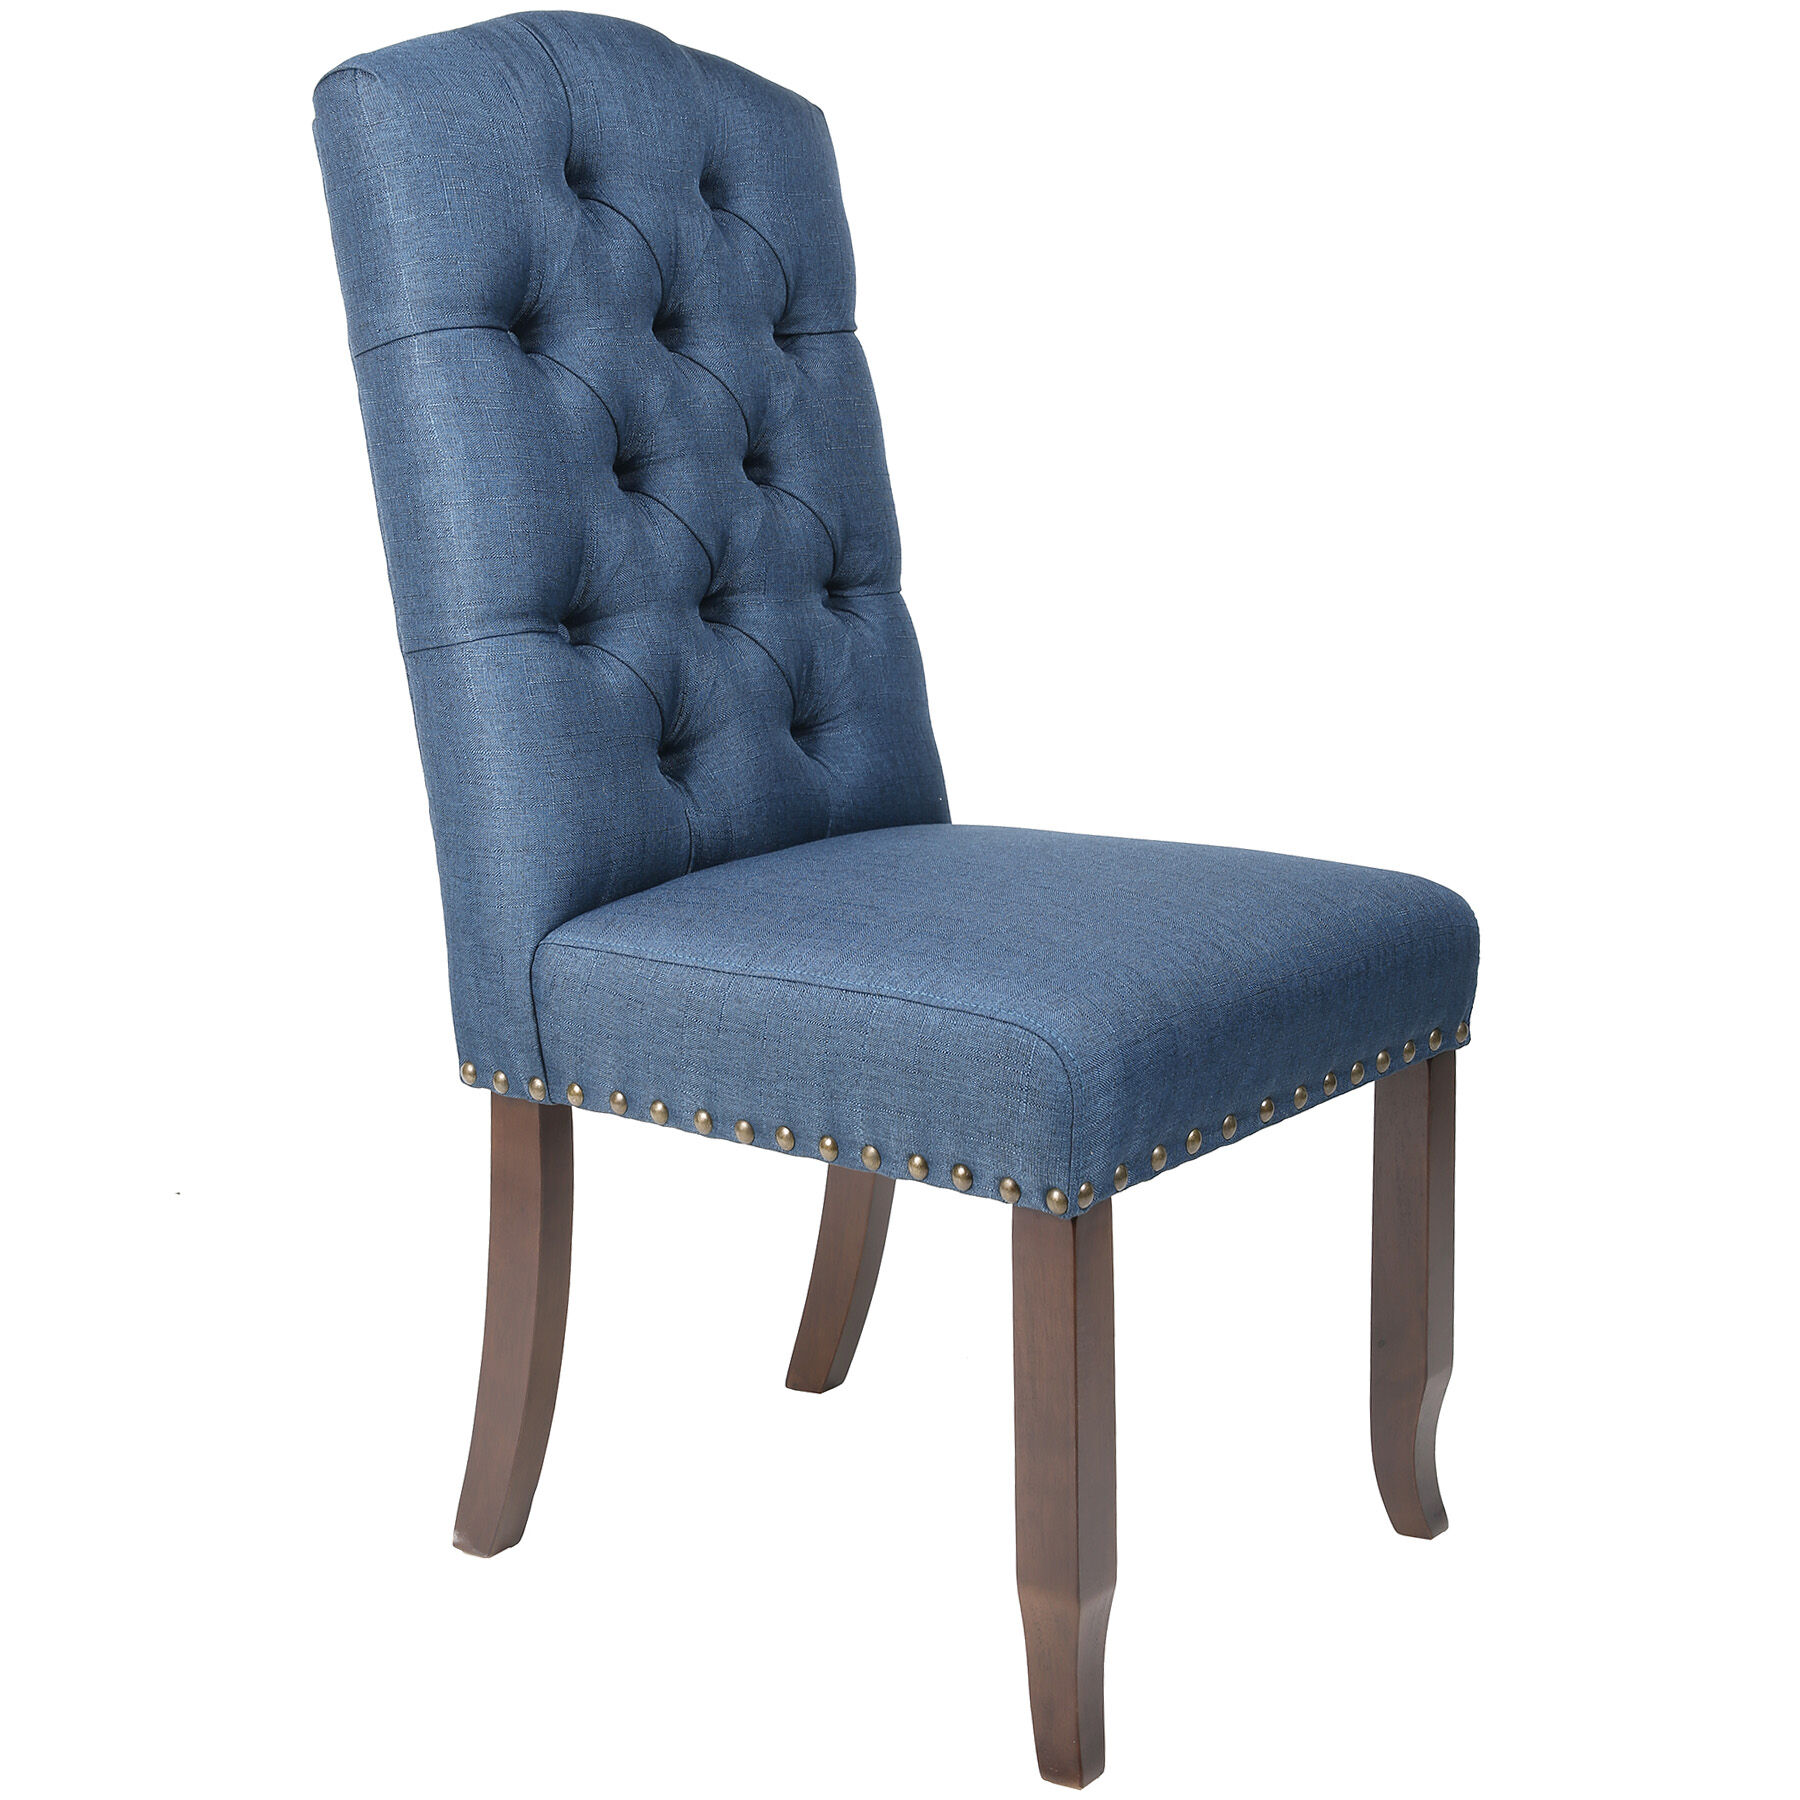 medium resolution of amina dining chair navy zoom